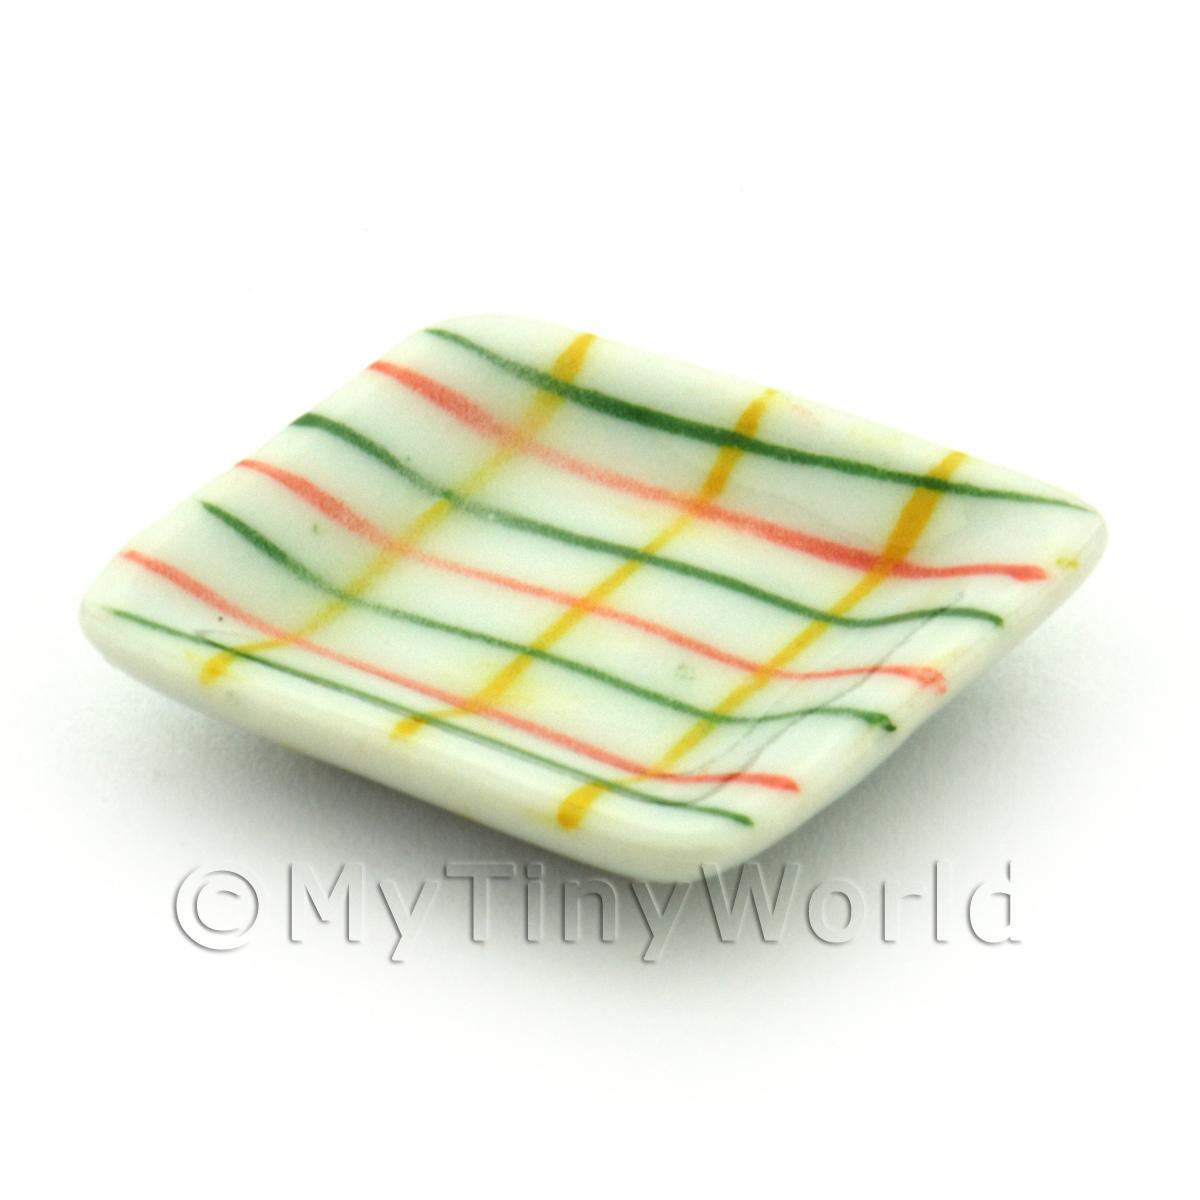 Dolls House Miniature Crosshatch Pattern Ceramic 21mm Square Plate